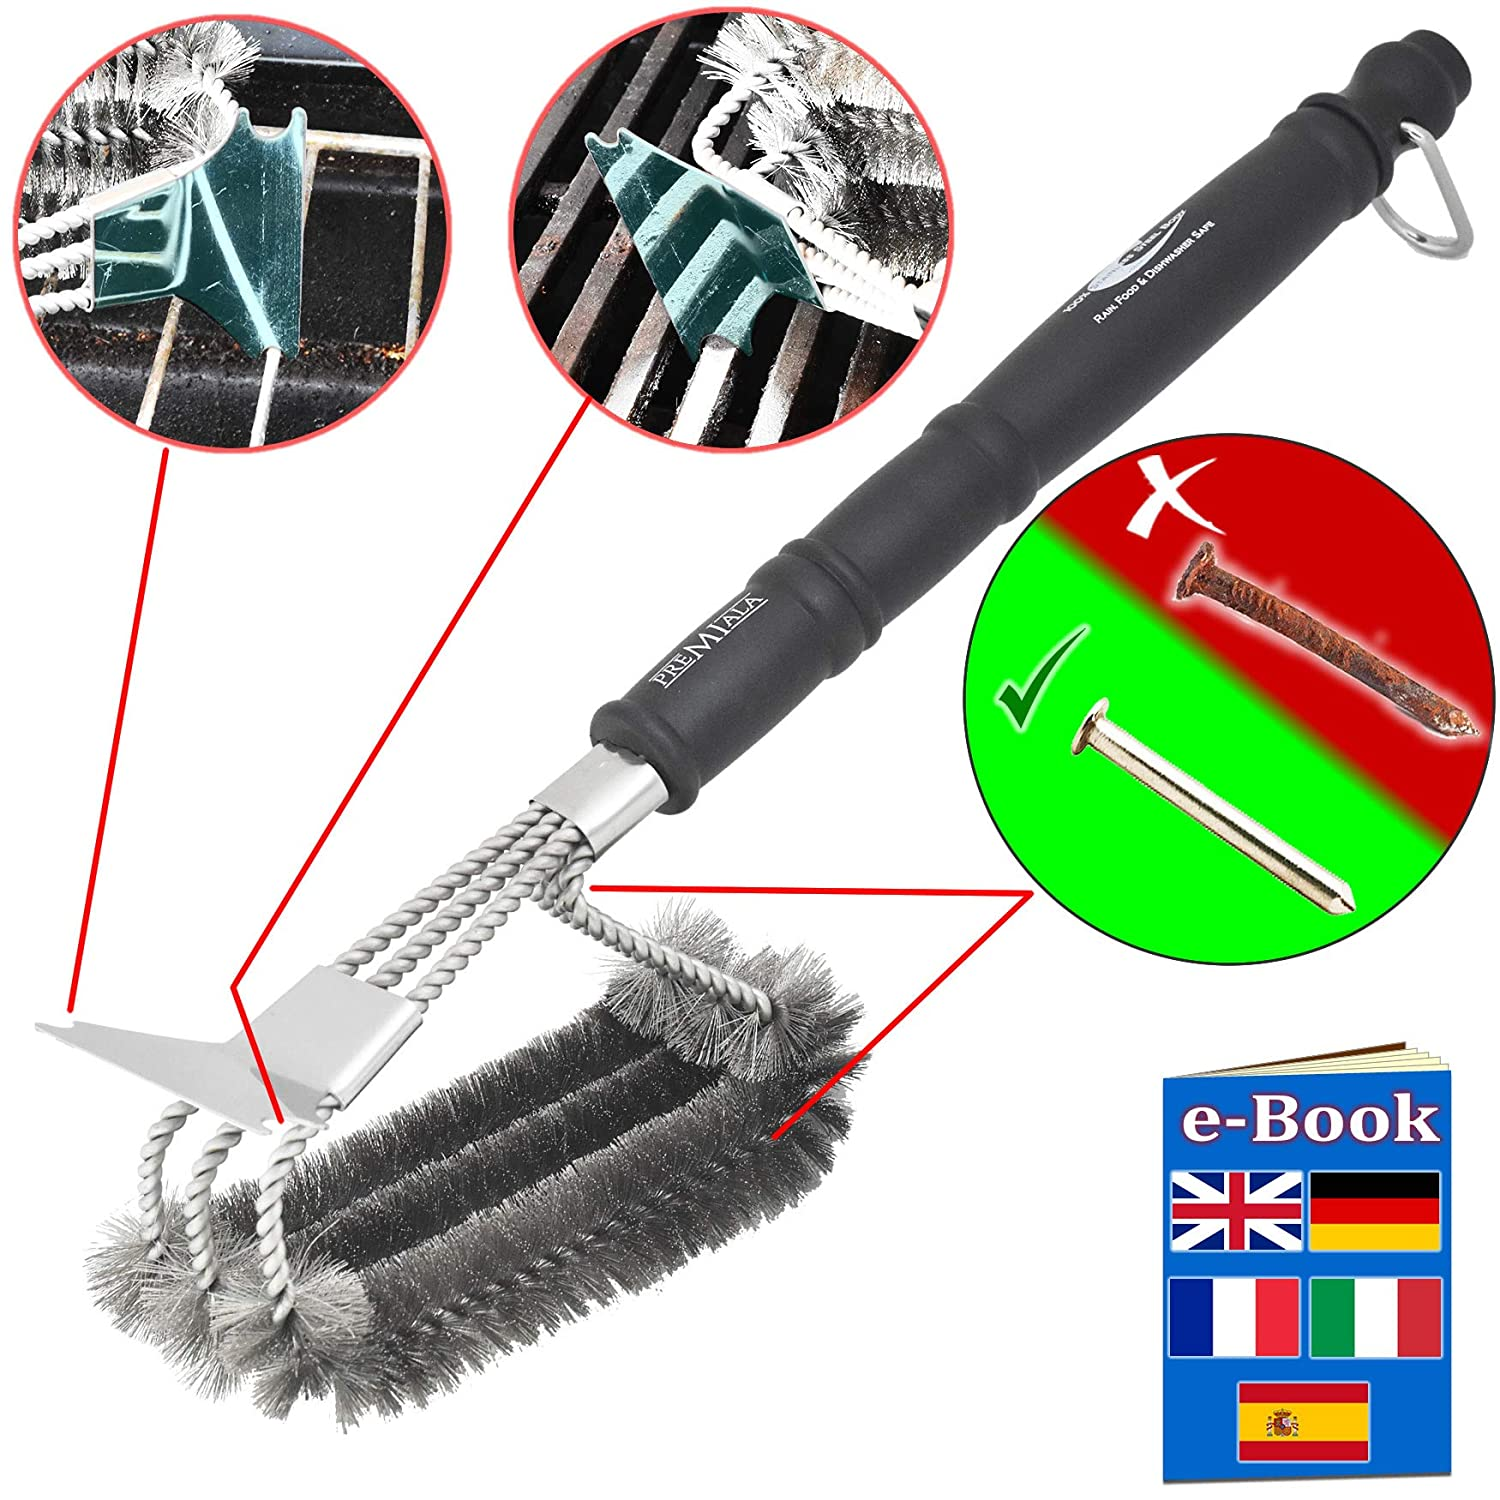 Premium BBQ Grill Brush - 100% stainless steel - keeps your iron, steel and porcelain barbecue smoker grates hygienic, clean and safe! Rain-proof, snow-proof, dishwasher safe, food-safe, bristles won\'t come out and will NEVER go rusty! Premiala